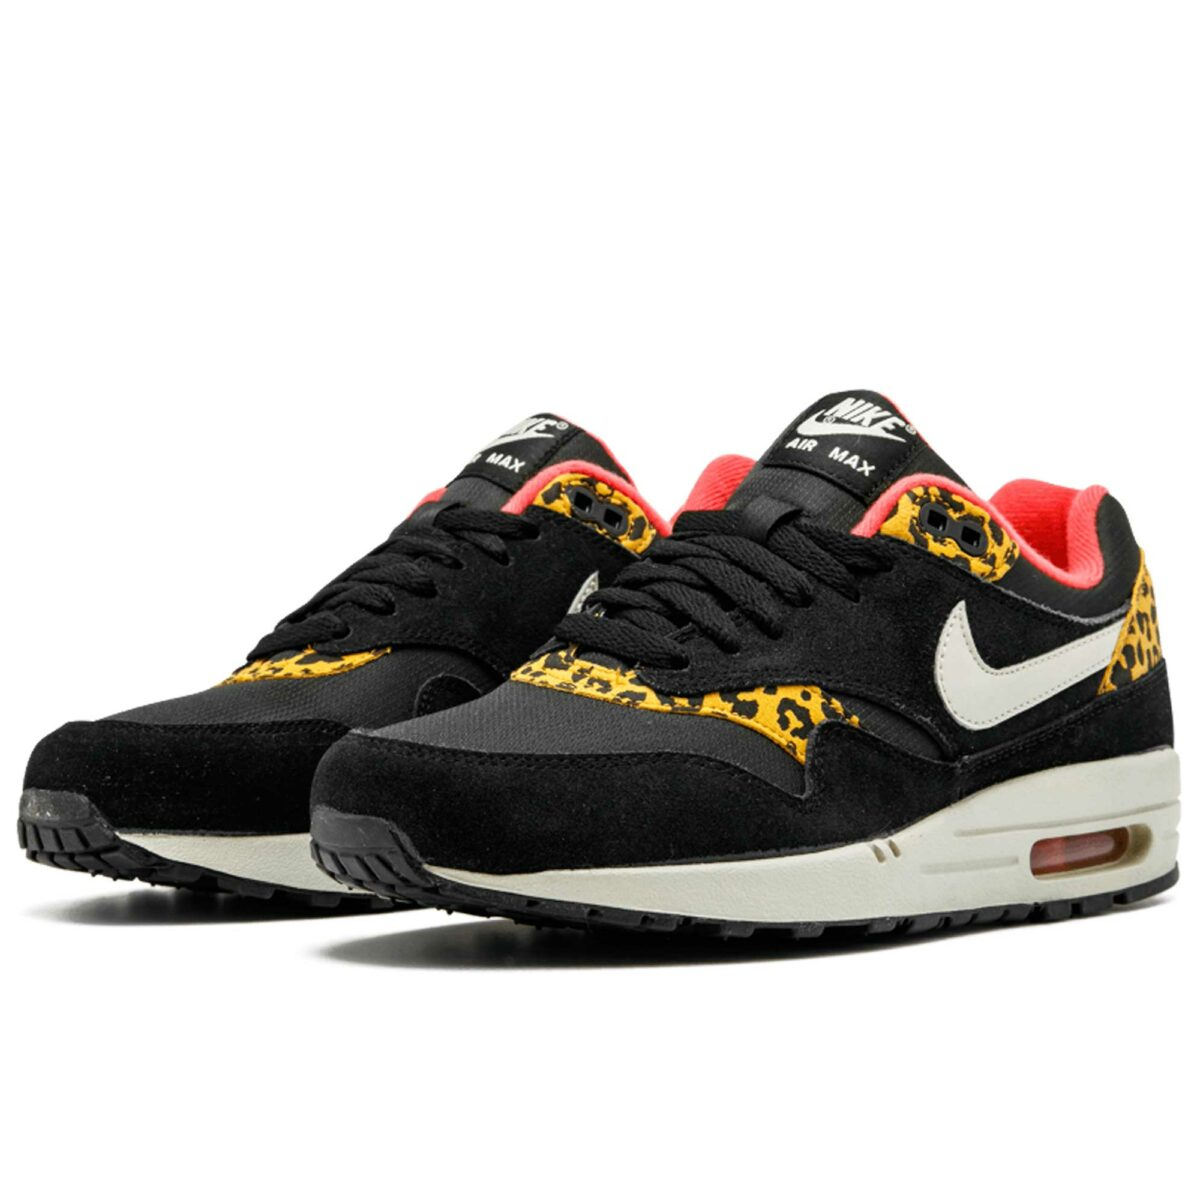 nike air max (1)87 black leopard 319986_026 купить